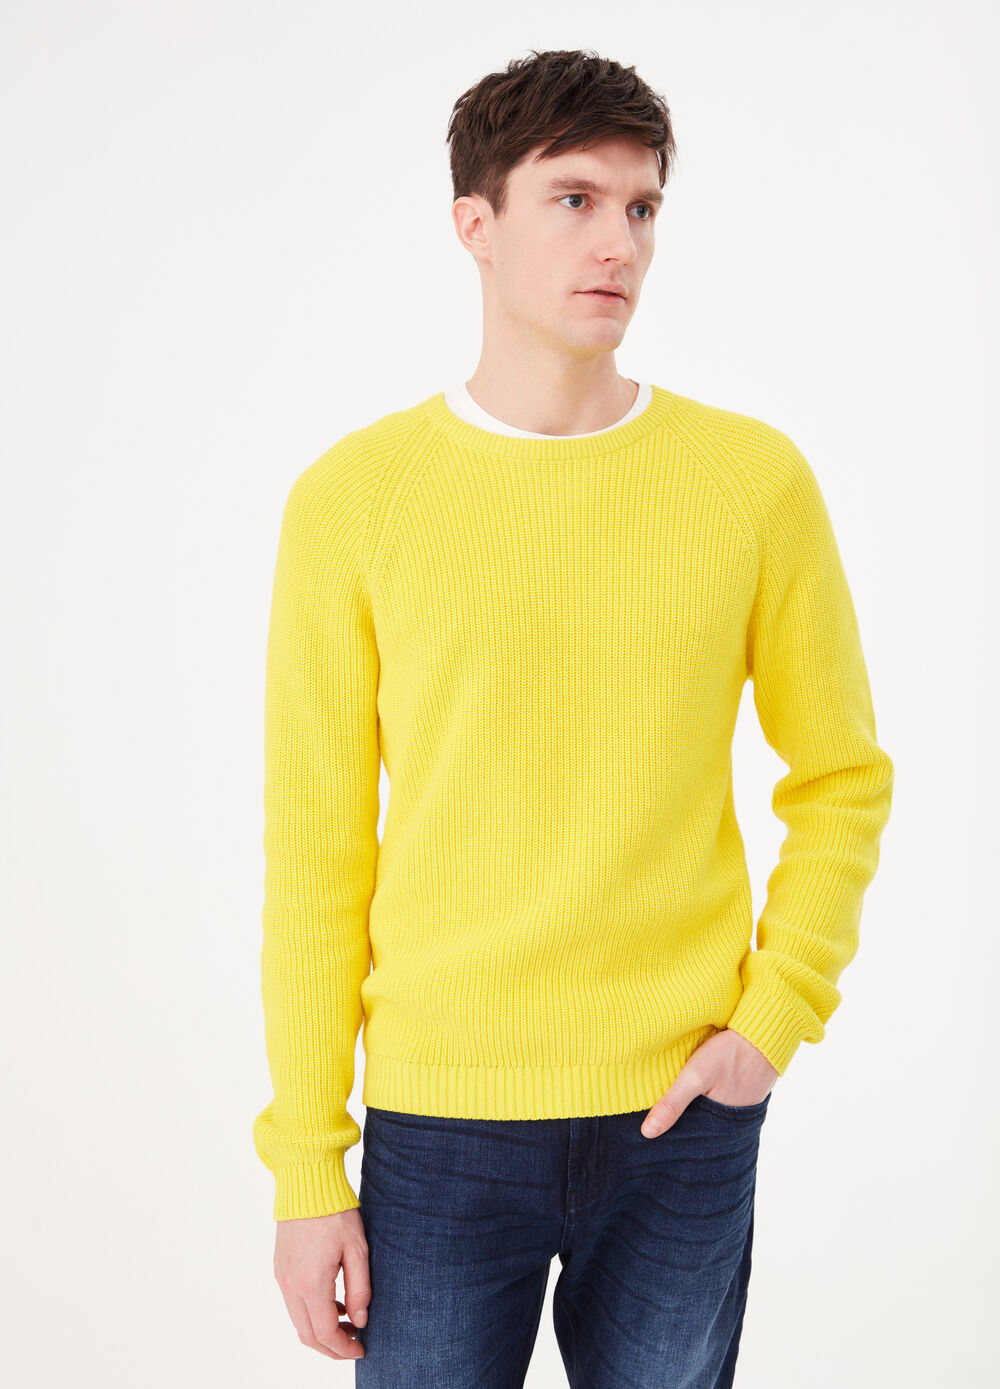 Knitted pullover in 100% cotton with striped weave